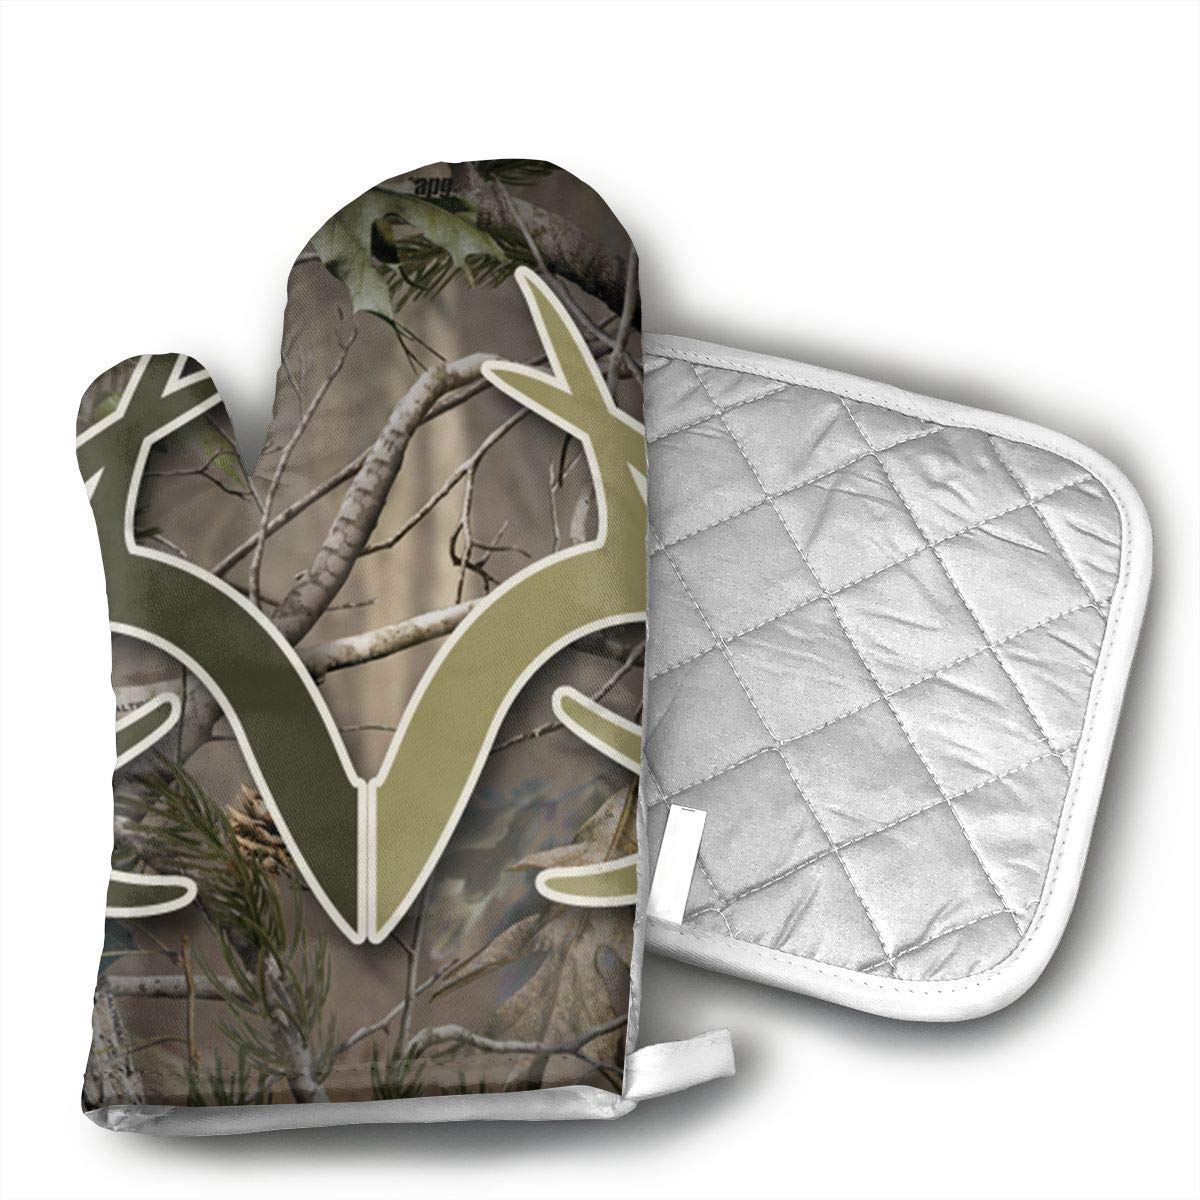 Realtree Camo Wallpapers Oven Mitts Gloves 2 Set Microwave BBQ Oven Cotton Baking Pot Mitts, Kitchen Glove Heat Resistant Cook Gloves Mitts Cooking, Baking, Barbecue Potholder, Present